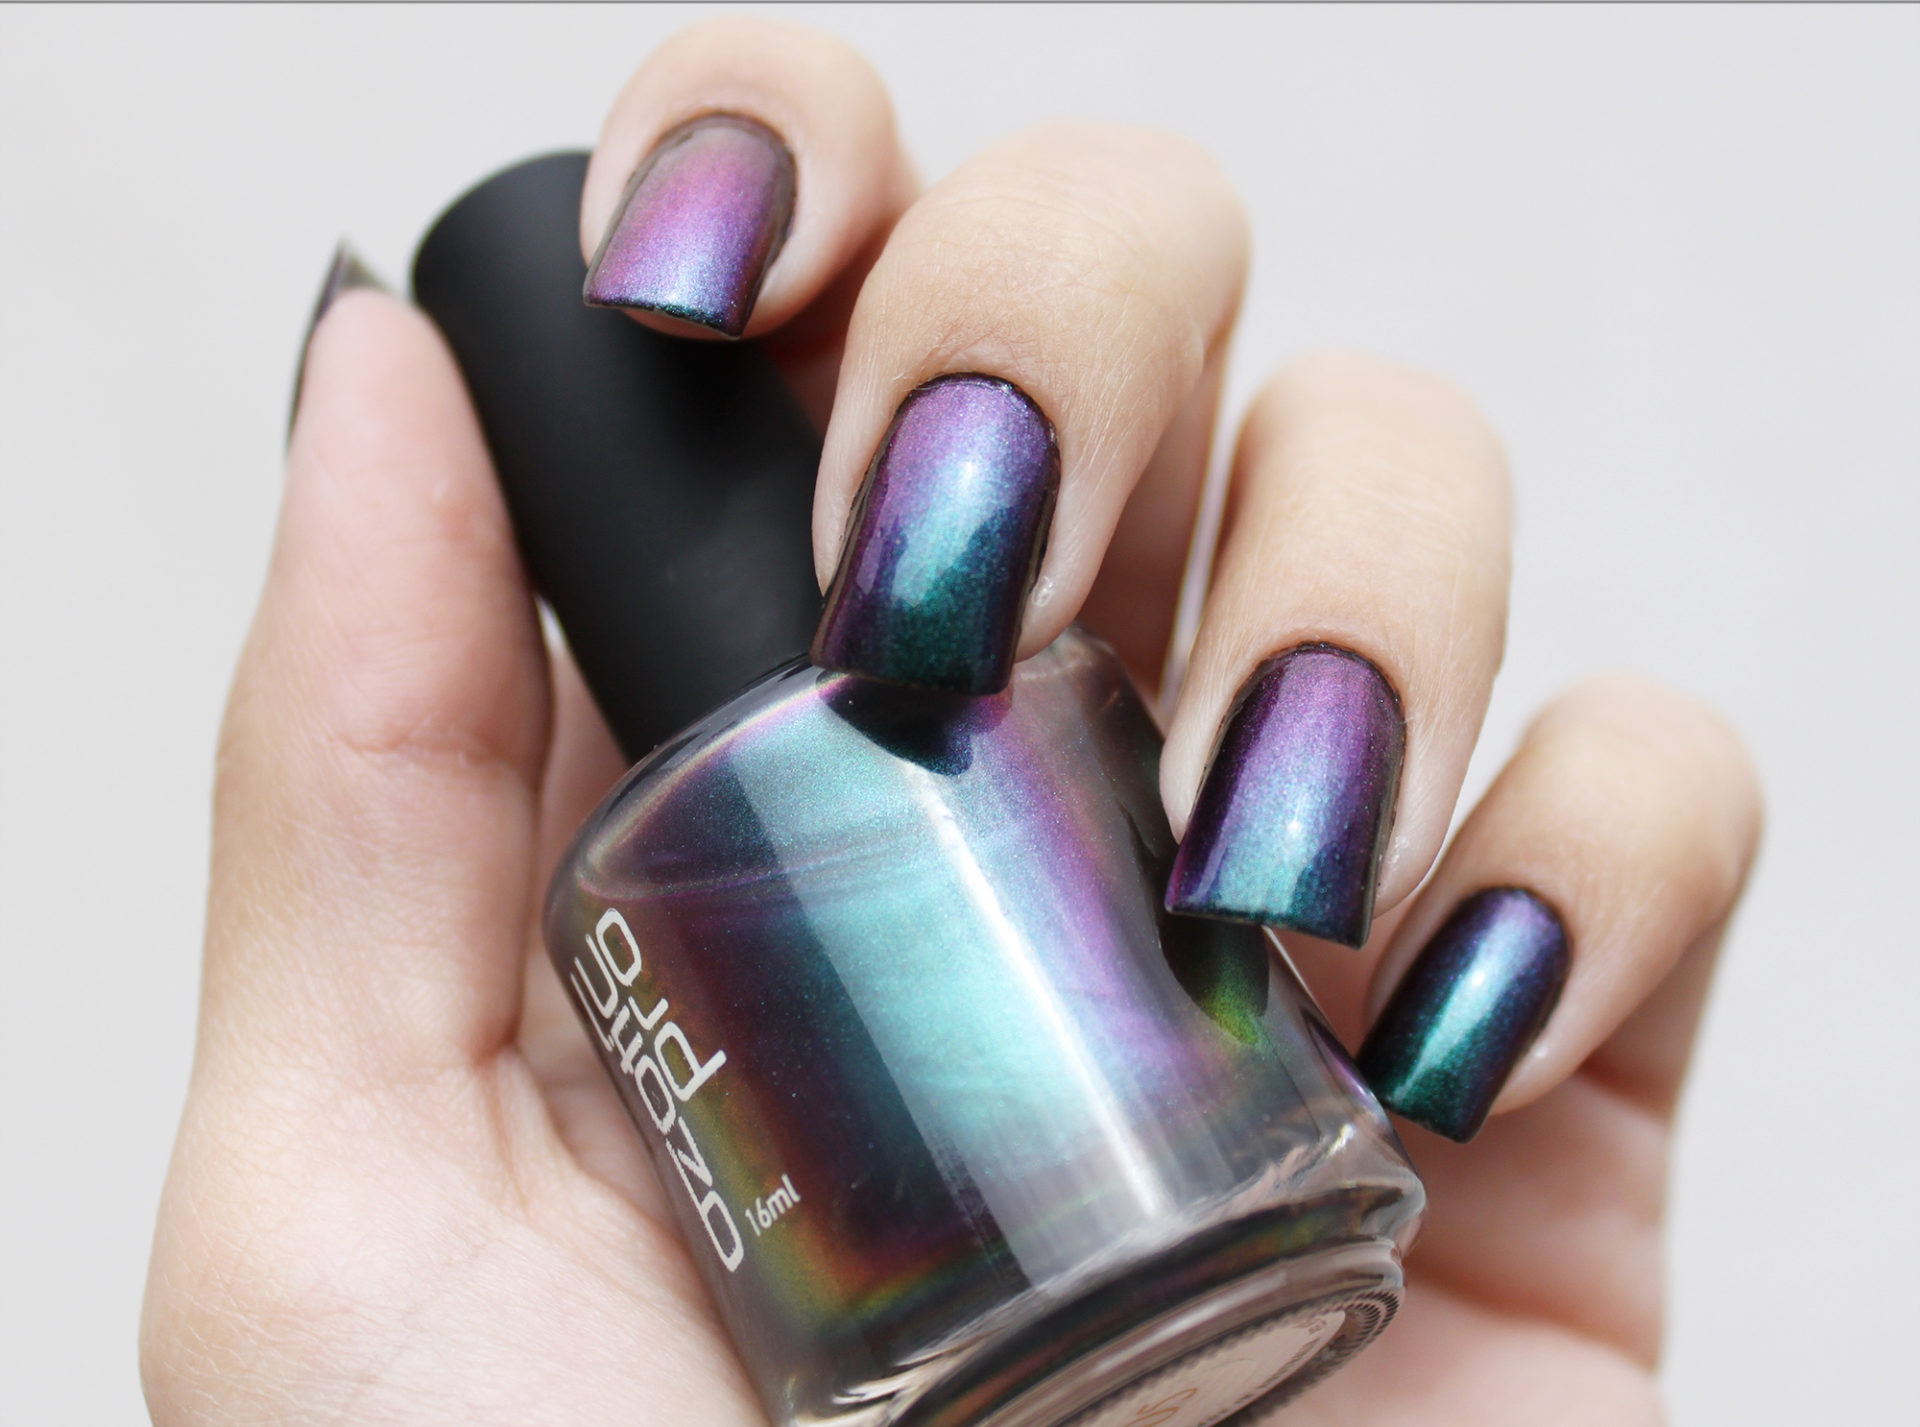 Facts About Gel Manicure - Sparkly Polish Nails